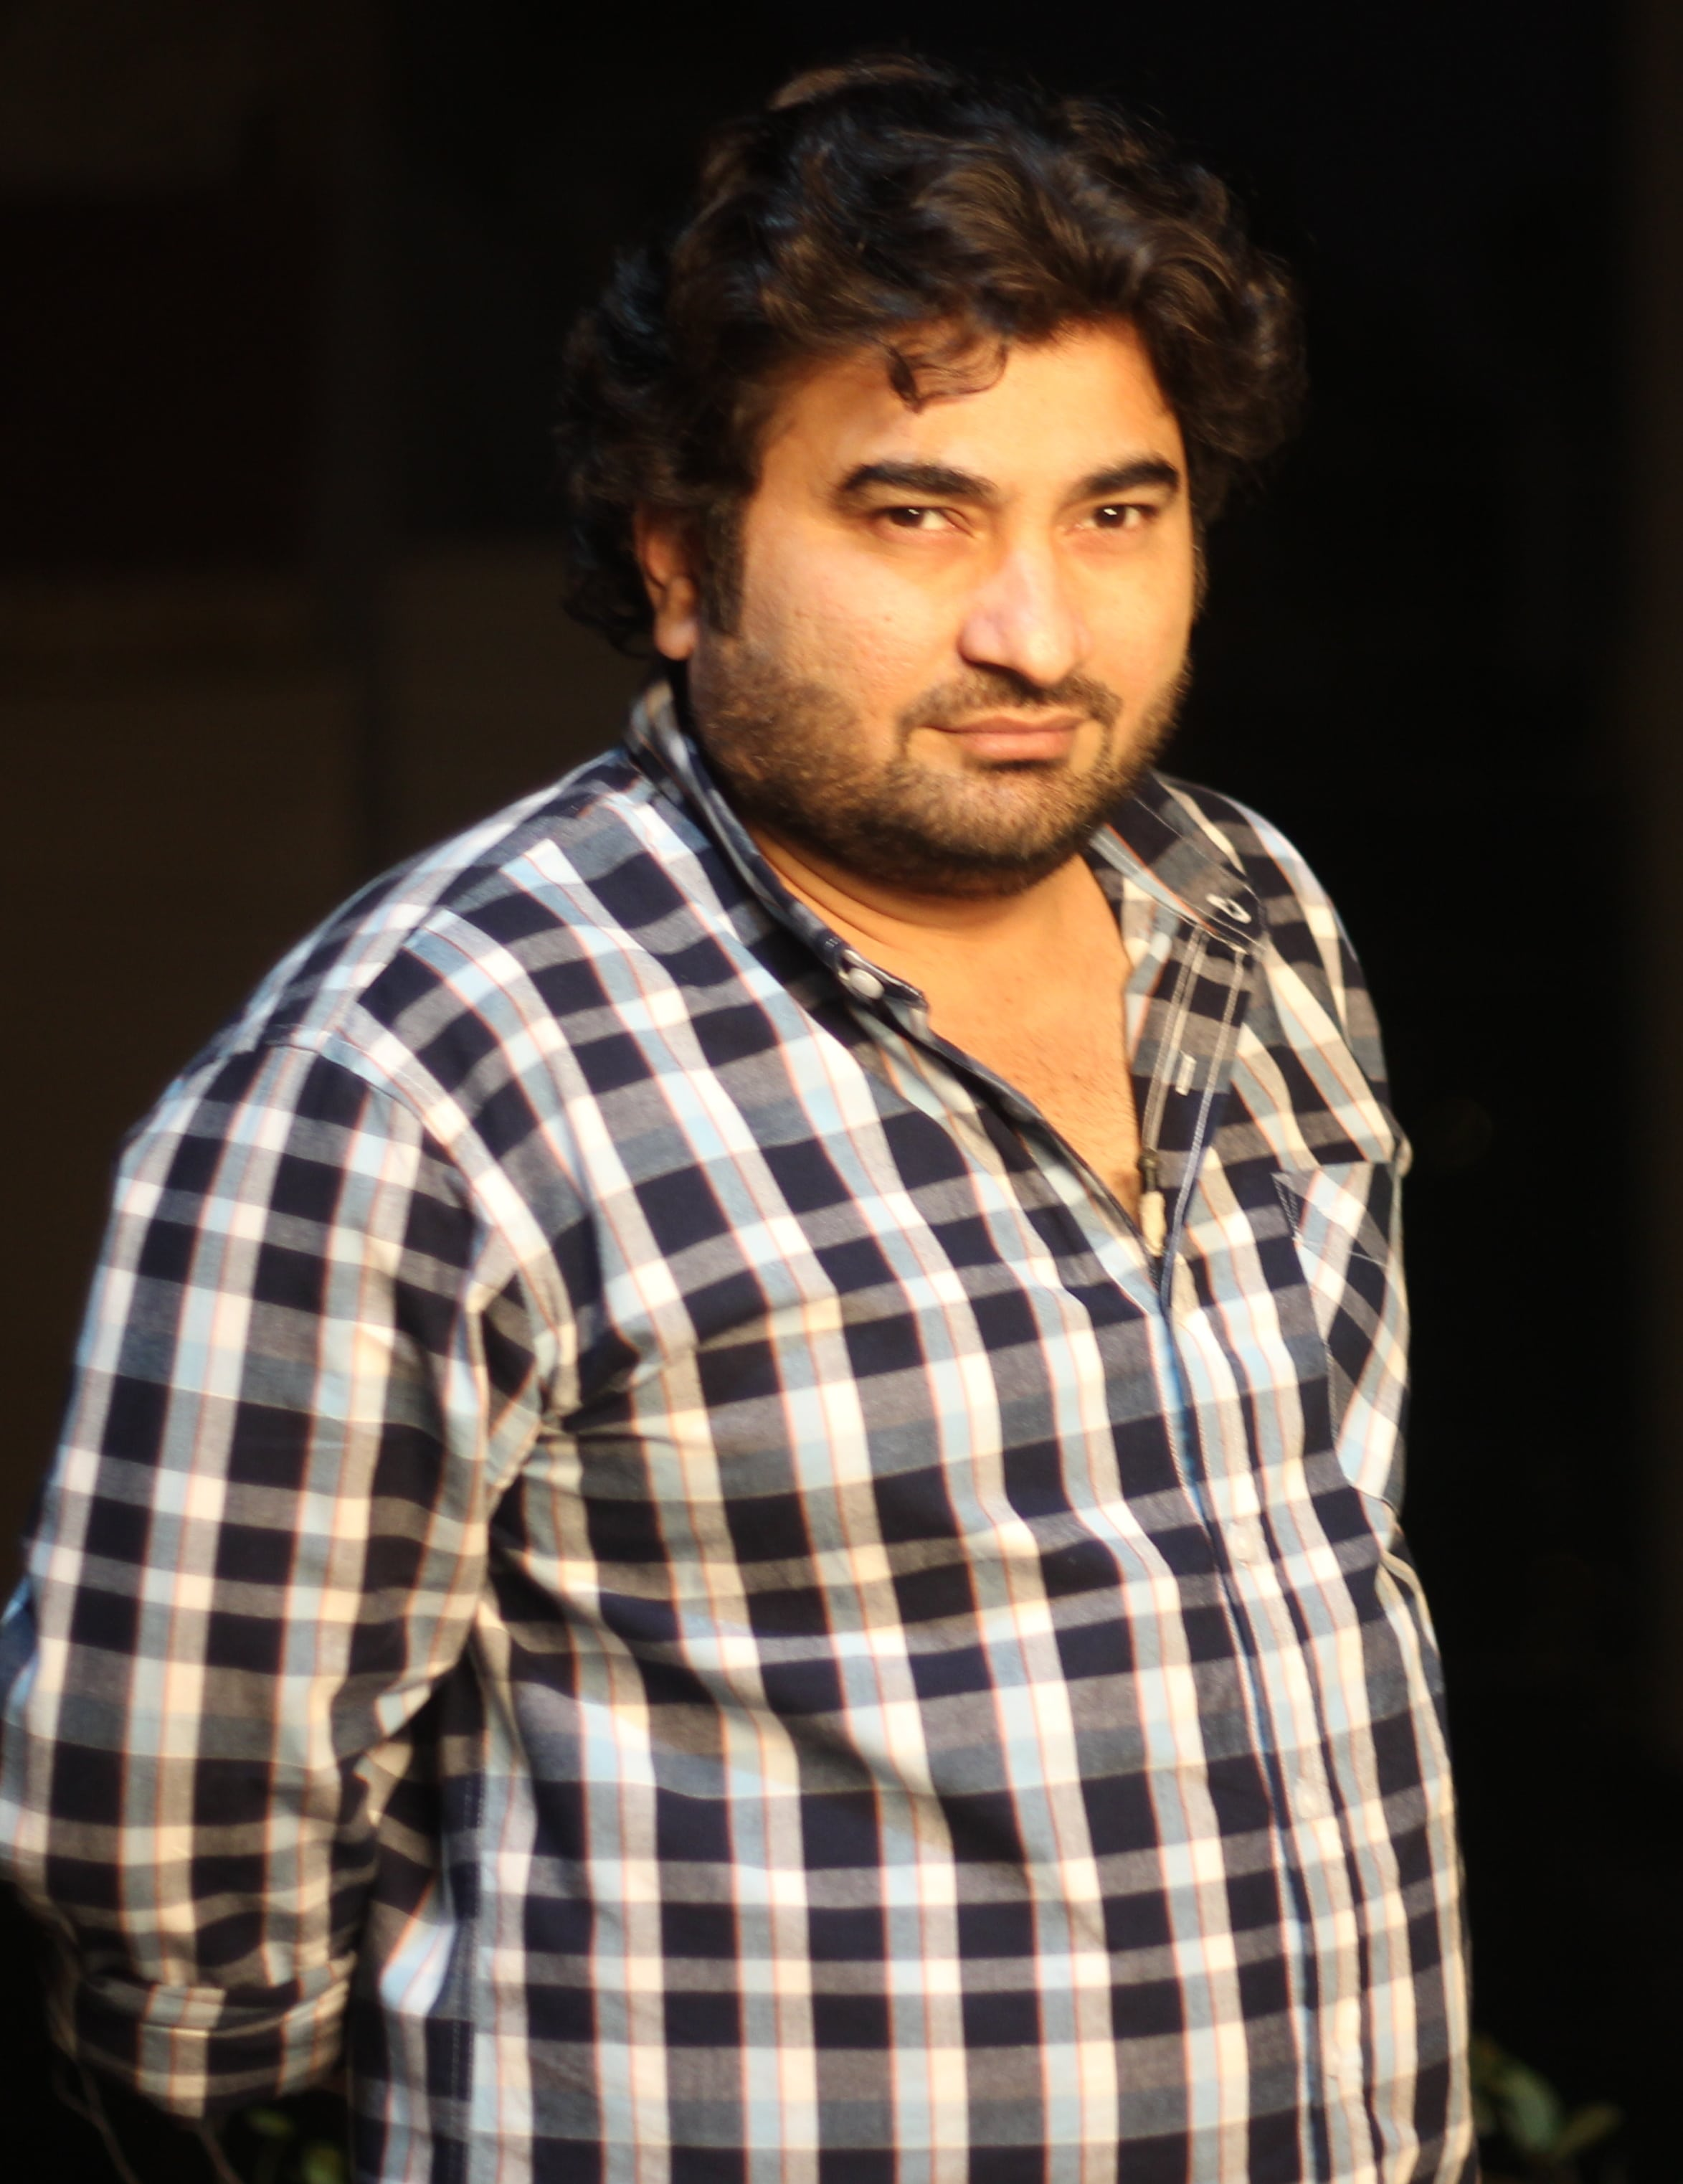 Danish Nawaz Pakistani Actor, Director, Comedian